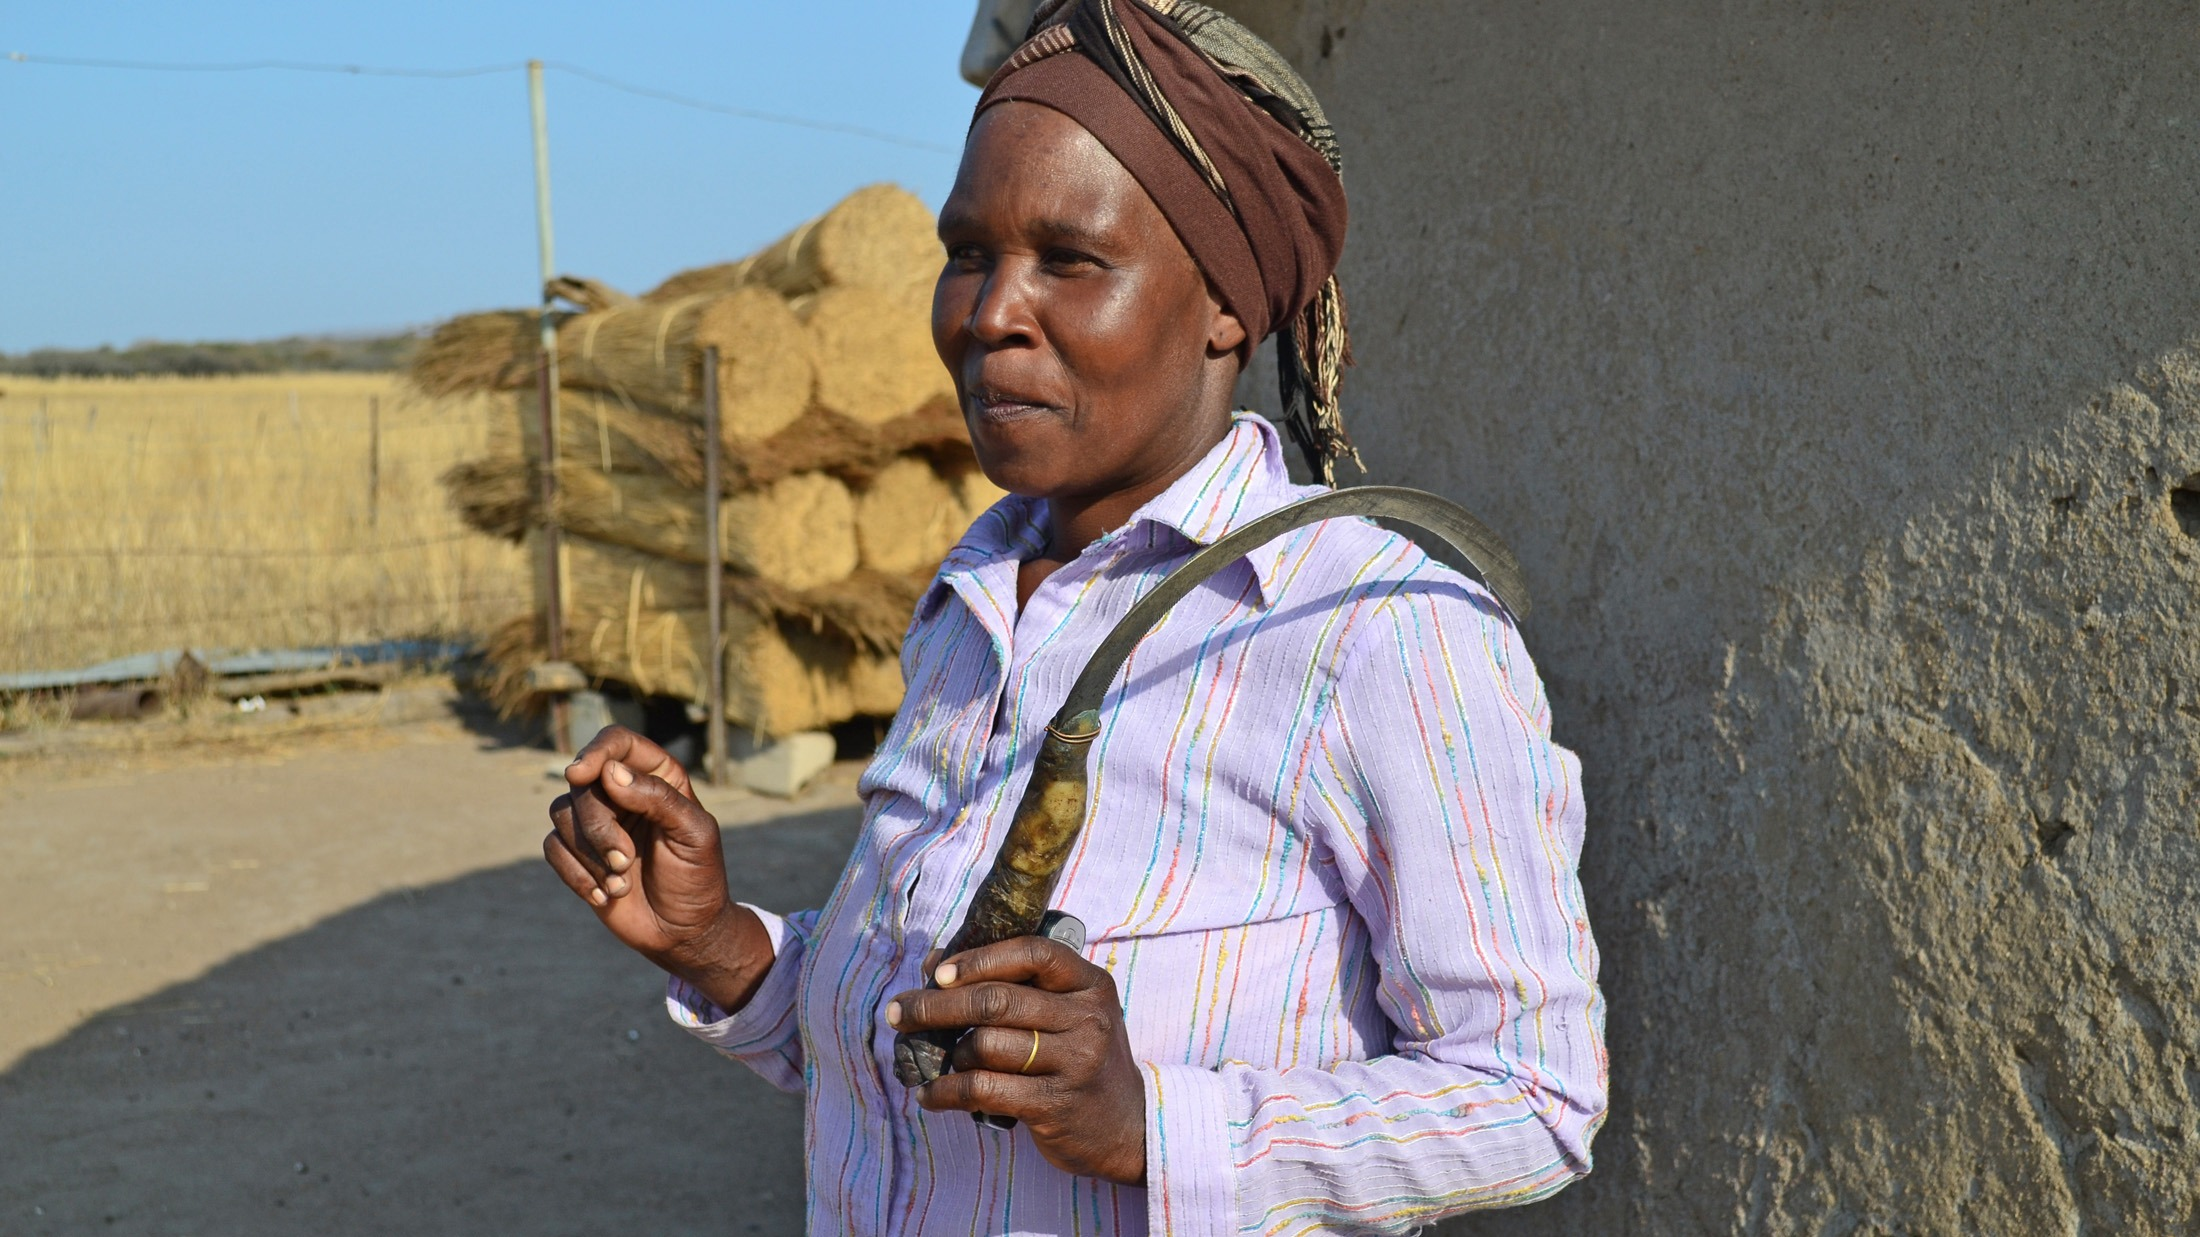 Sibongile Mthimkhulu, 63, has struggled to support her family since the land where she lives in South Africa's Kwazulu-Natal Province was sold to a heritage council that limits the numbers of cattle she can keep. She now cuts and sells grass to get by.